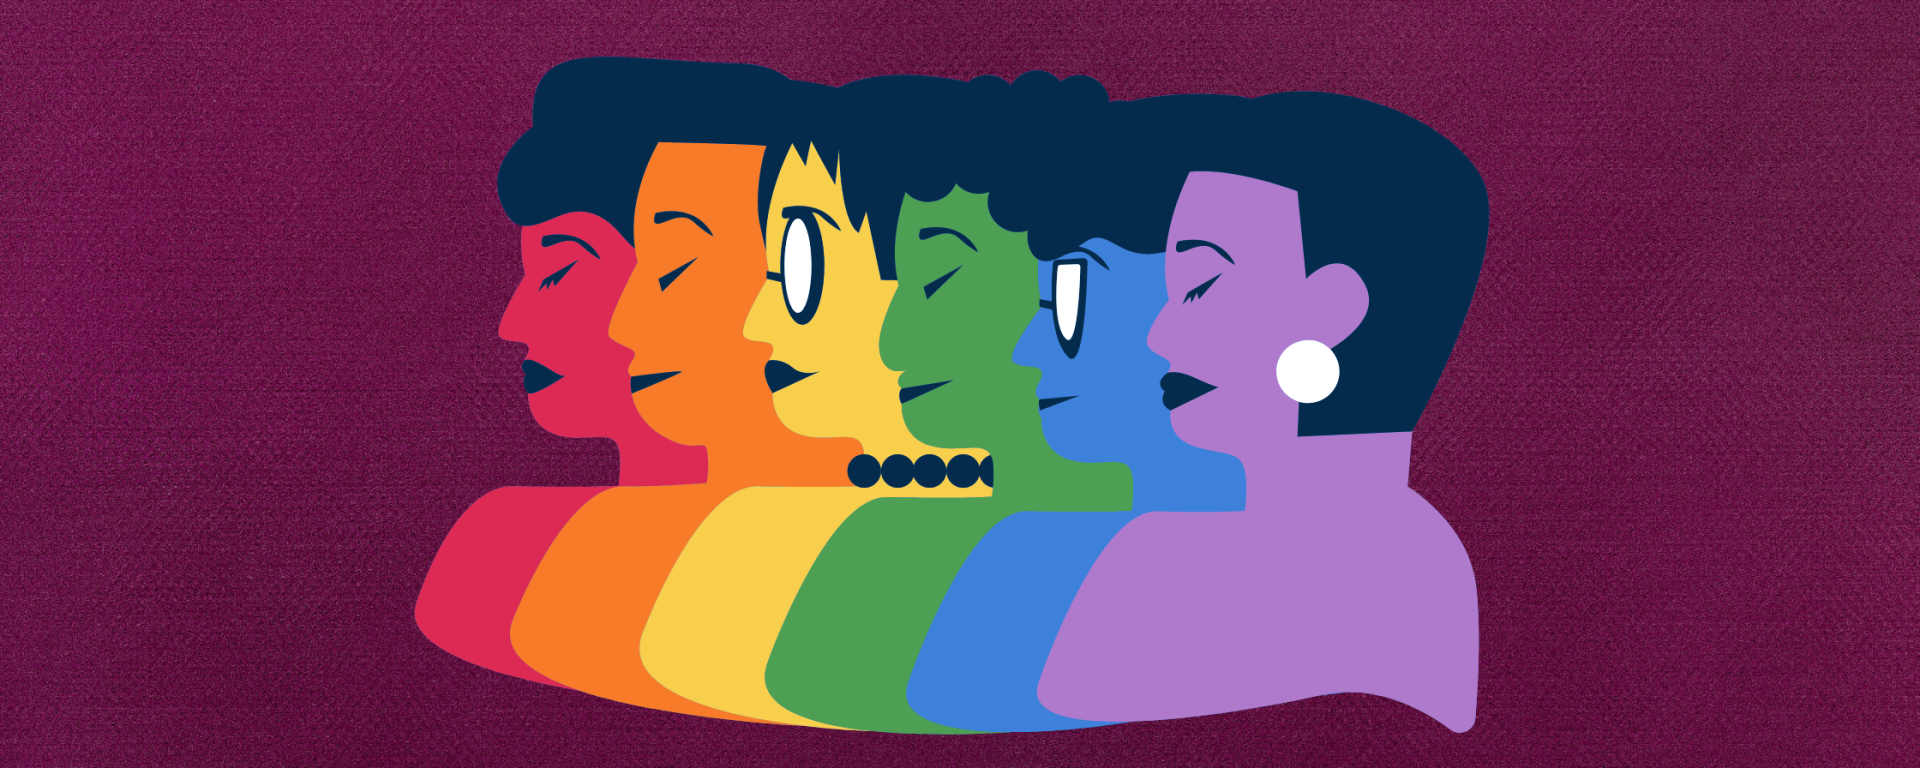 Purple background with a sticker including several faces, each a different color of the rainbow.